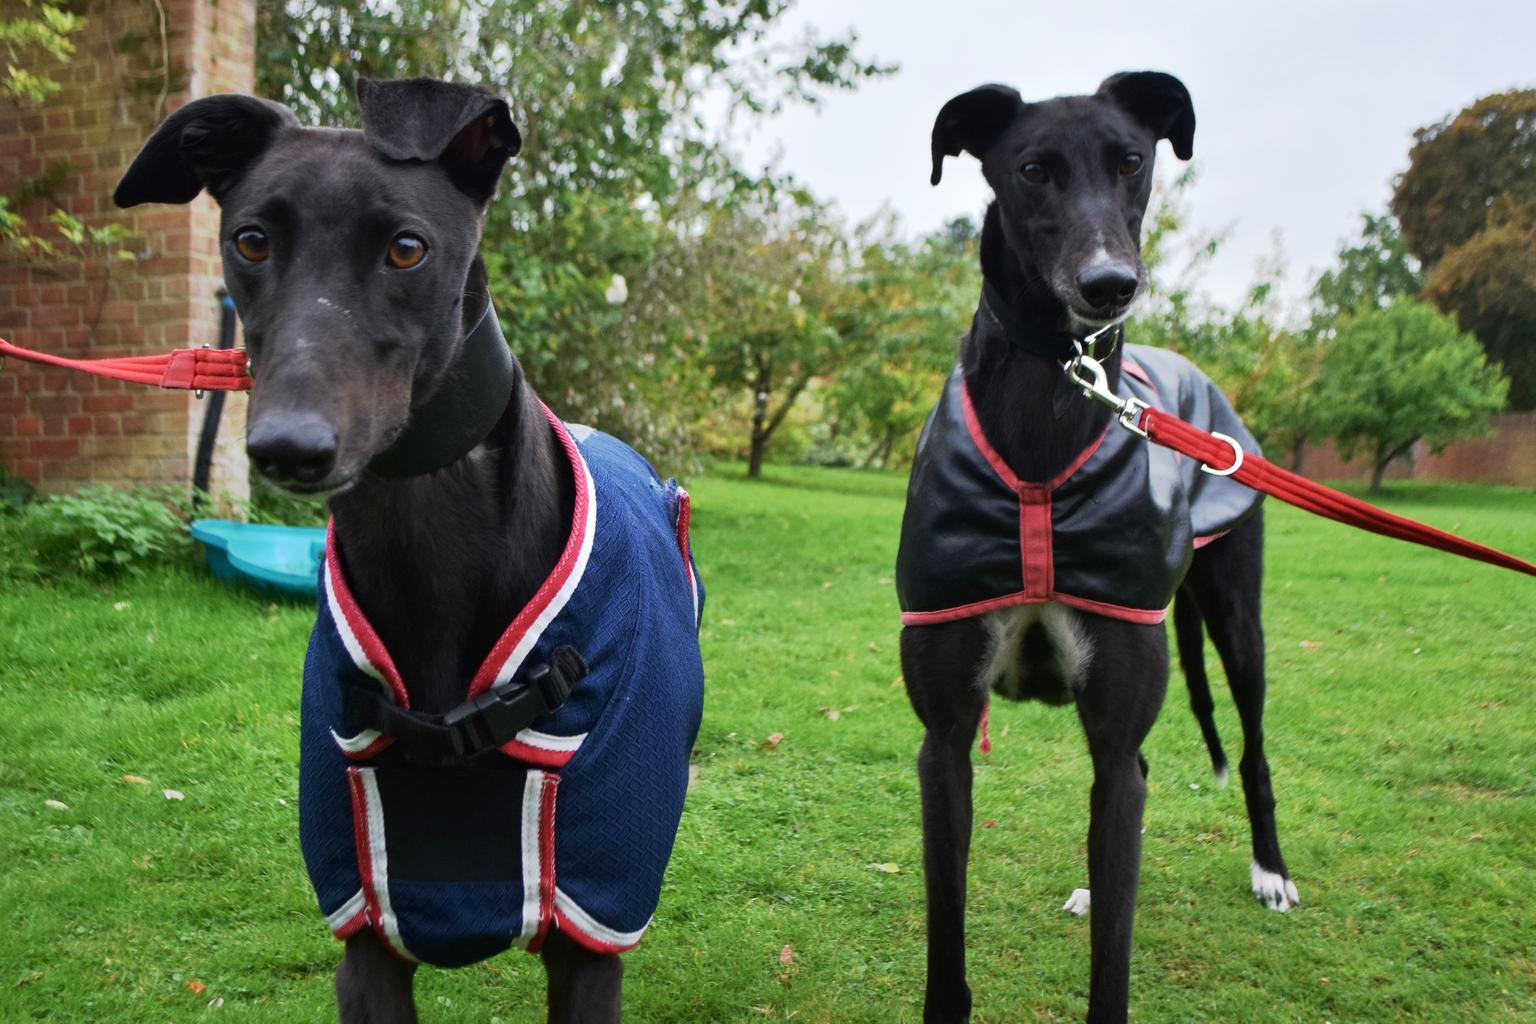 Smiley Serena and enthusiastic Eddie are looking for a home together, with owners who have some understanding of ex-racing Greyhounds and their needs. Tags: Battersea Dogs & Cats Home dog Greyhound rescuie dog